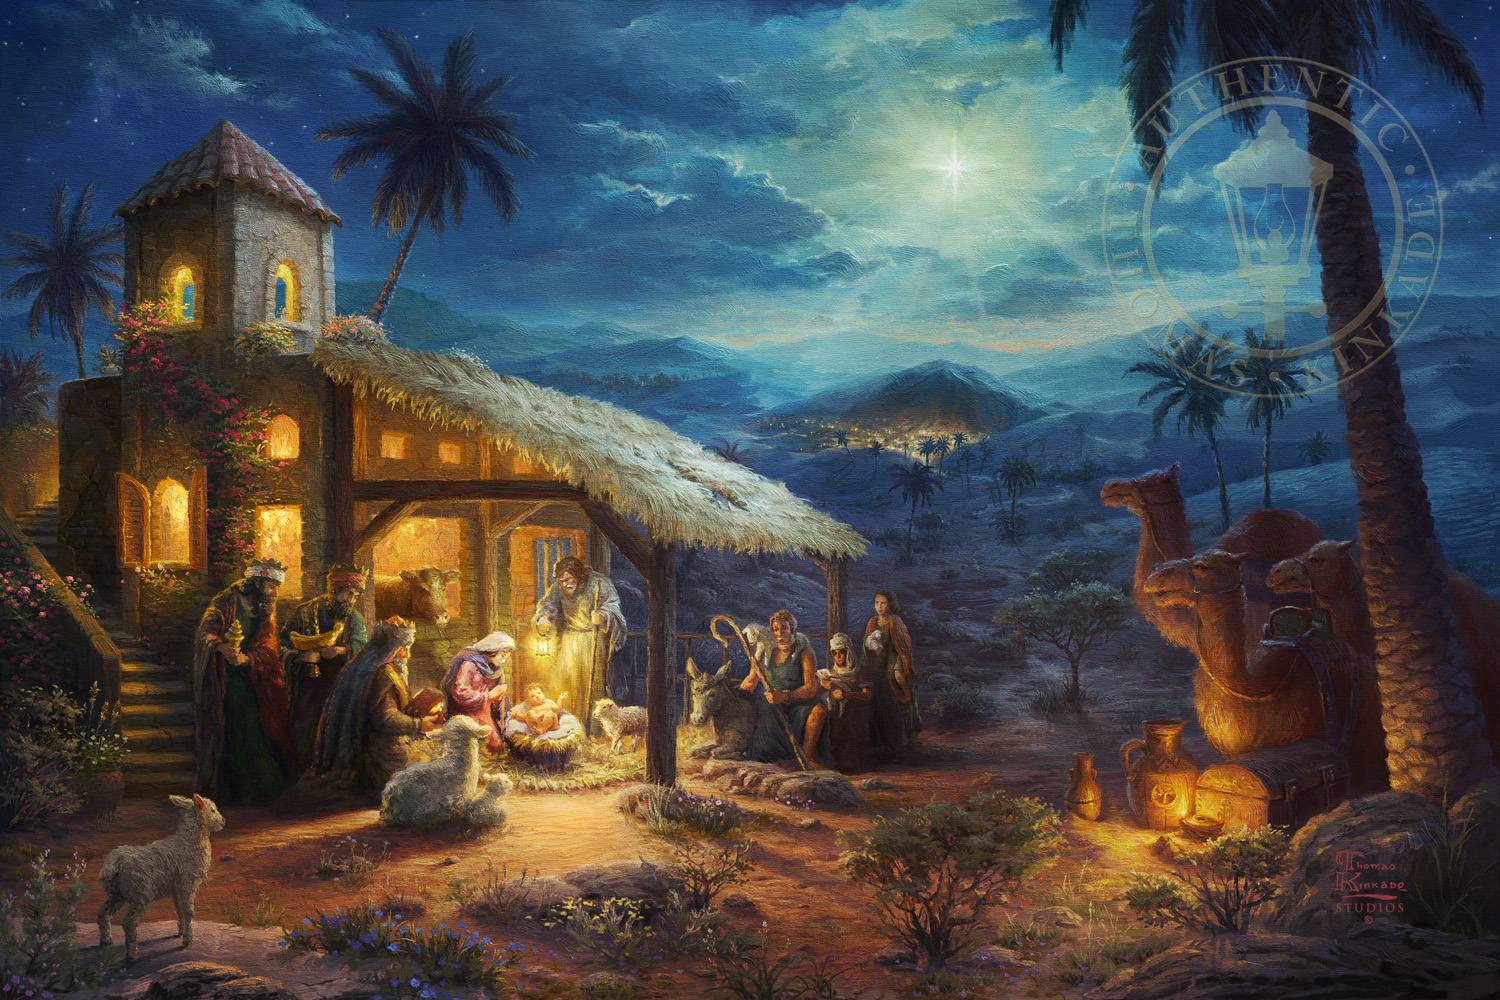 Thomas Kinkade Signed And Numbered Limited Edition Giclee